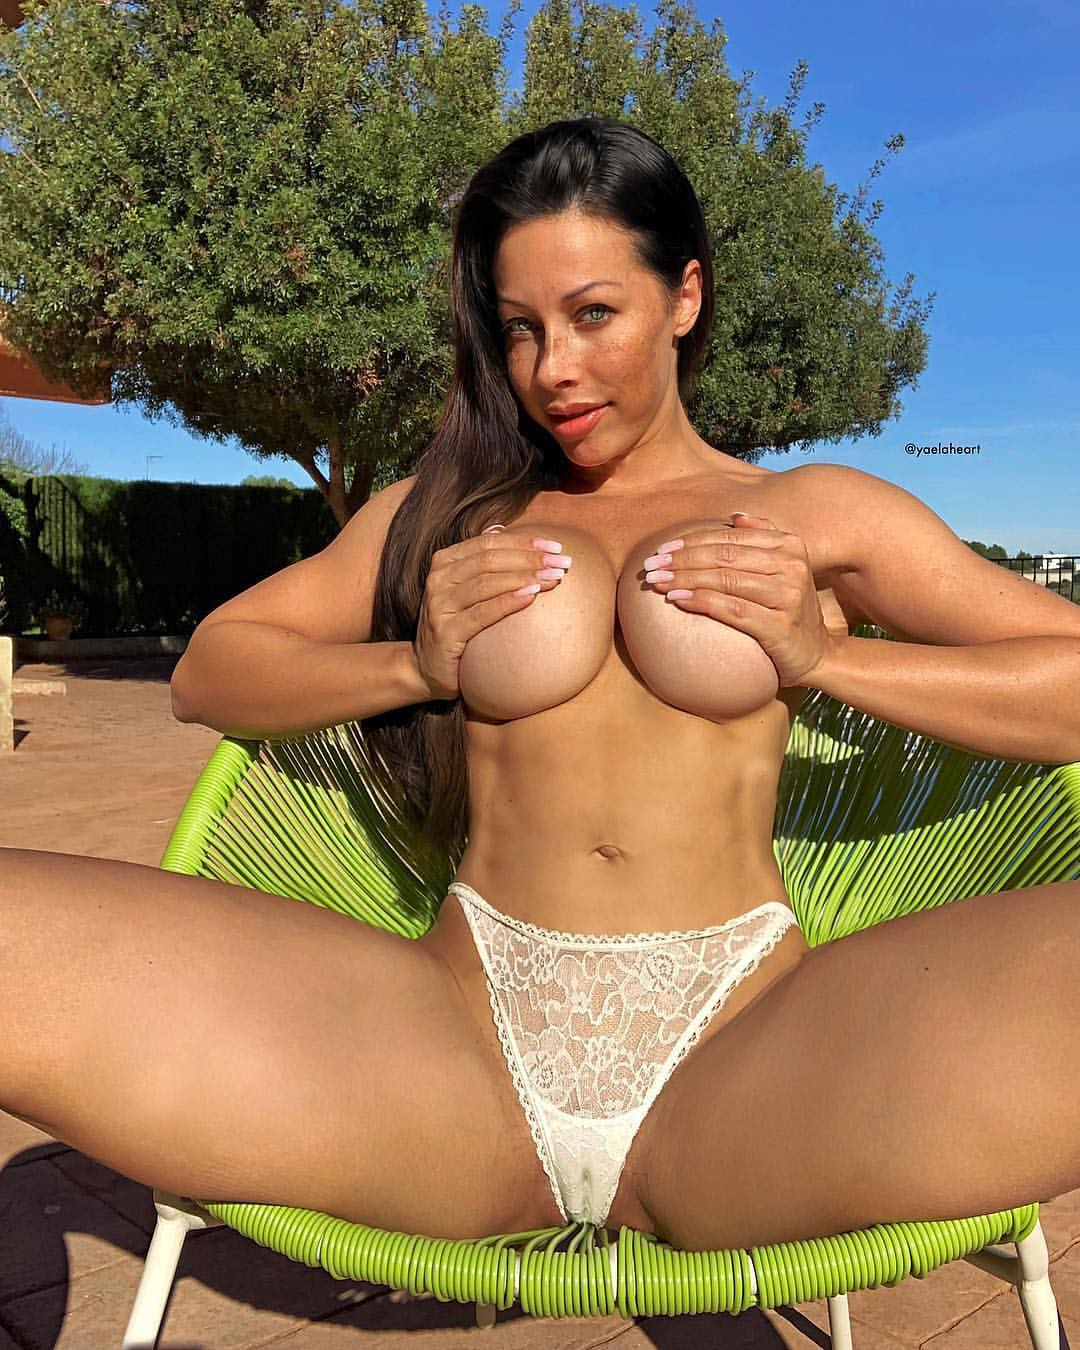 Dancer And Fitness Model Yaela Heart, The Queen Of Stretching (35 Photos)